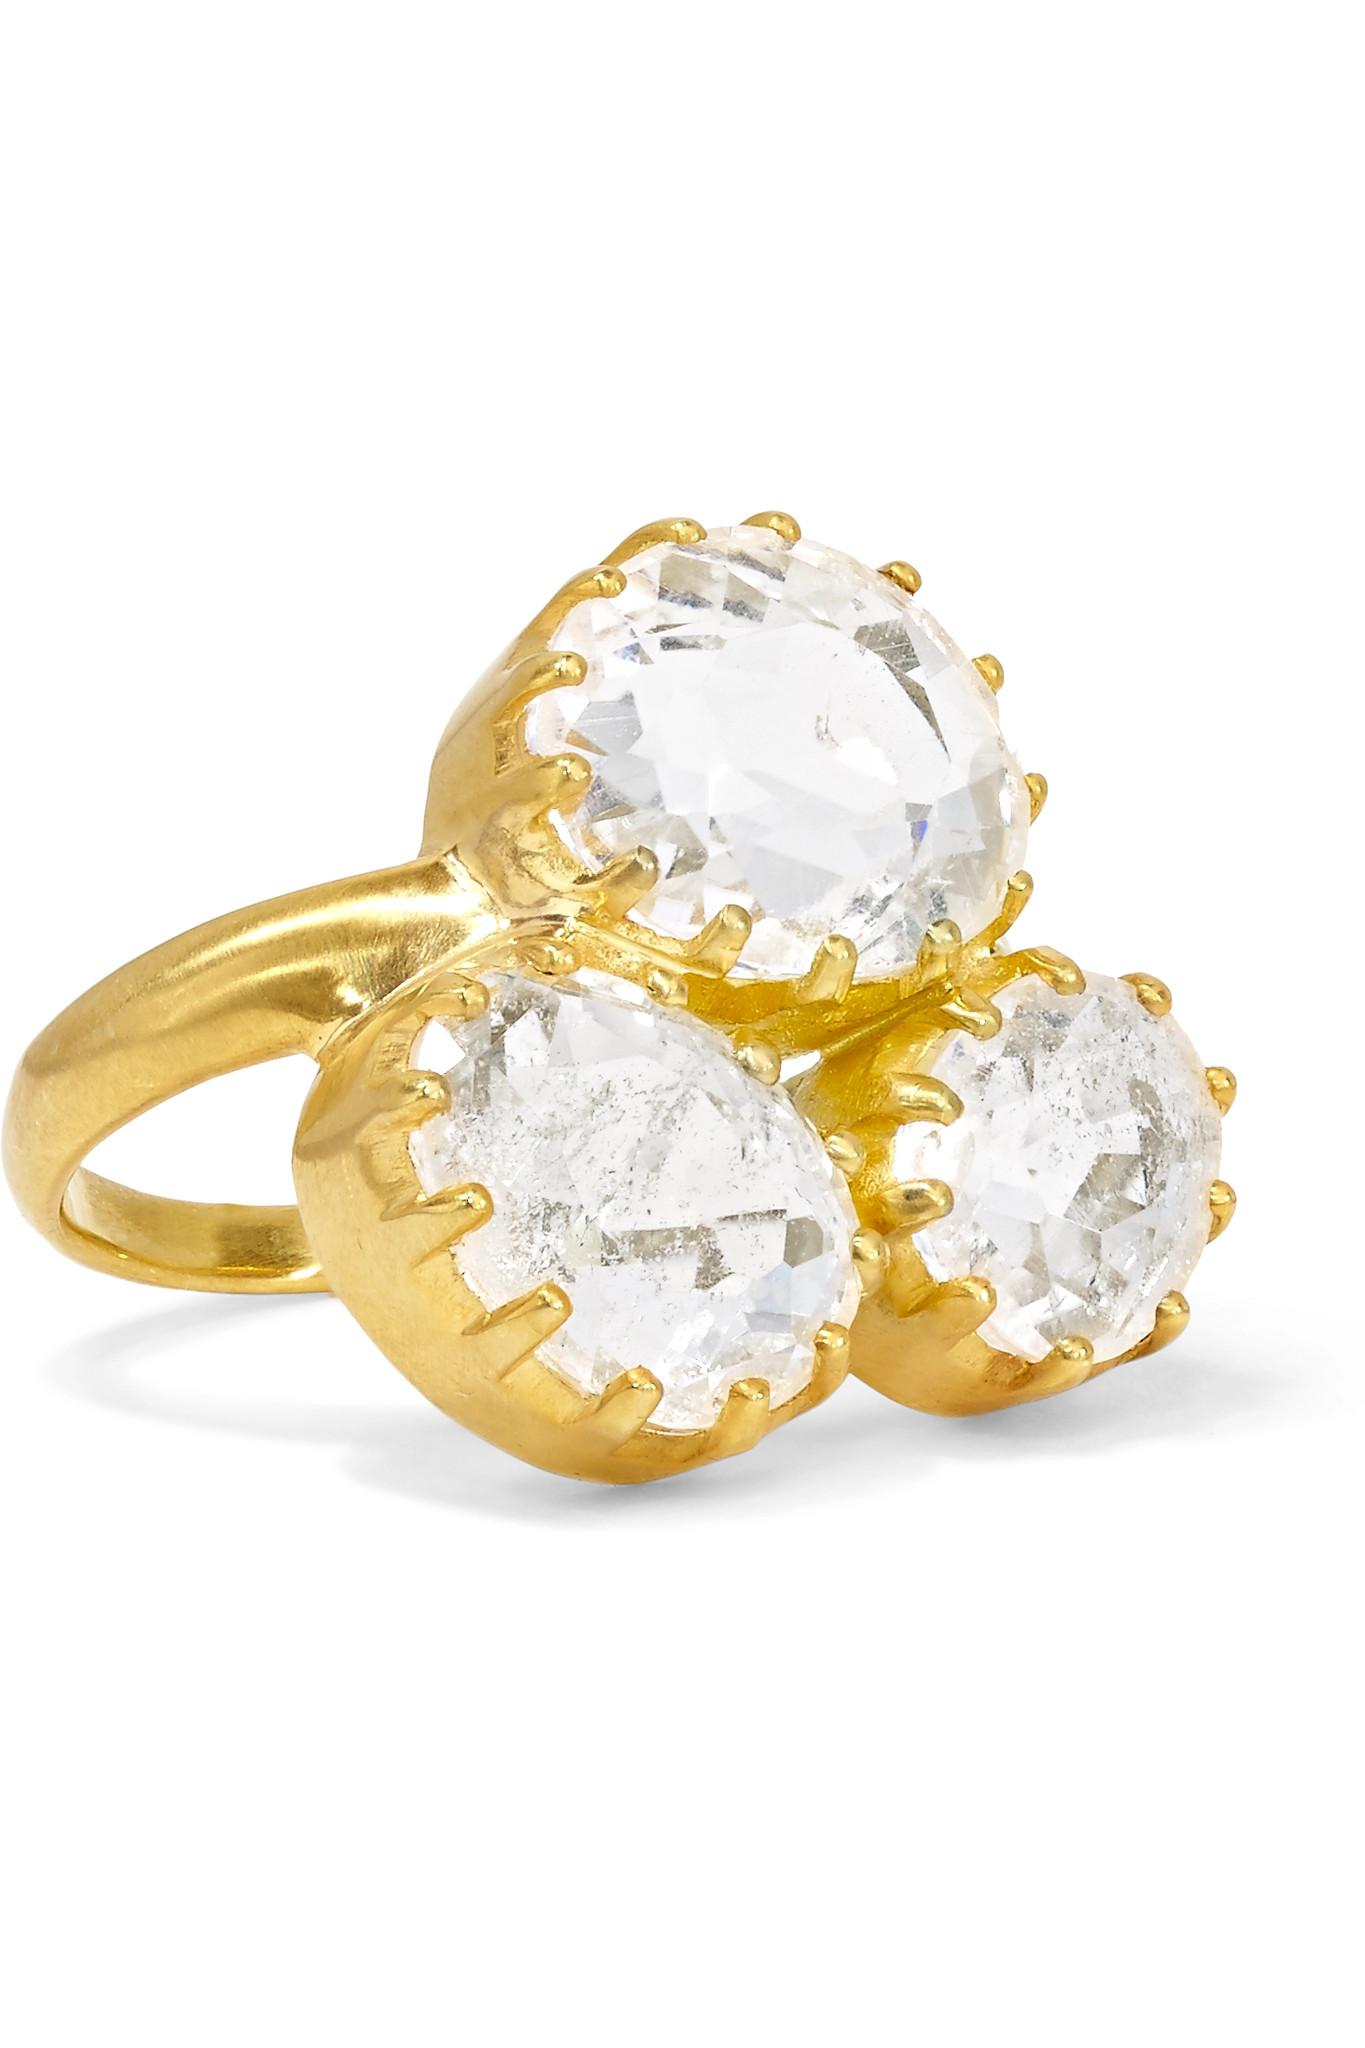 18-karat Gold Tourmaline Ring - M Pippa Small 1dHwosO